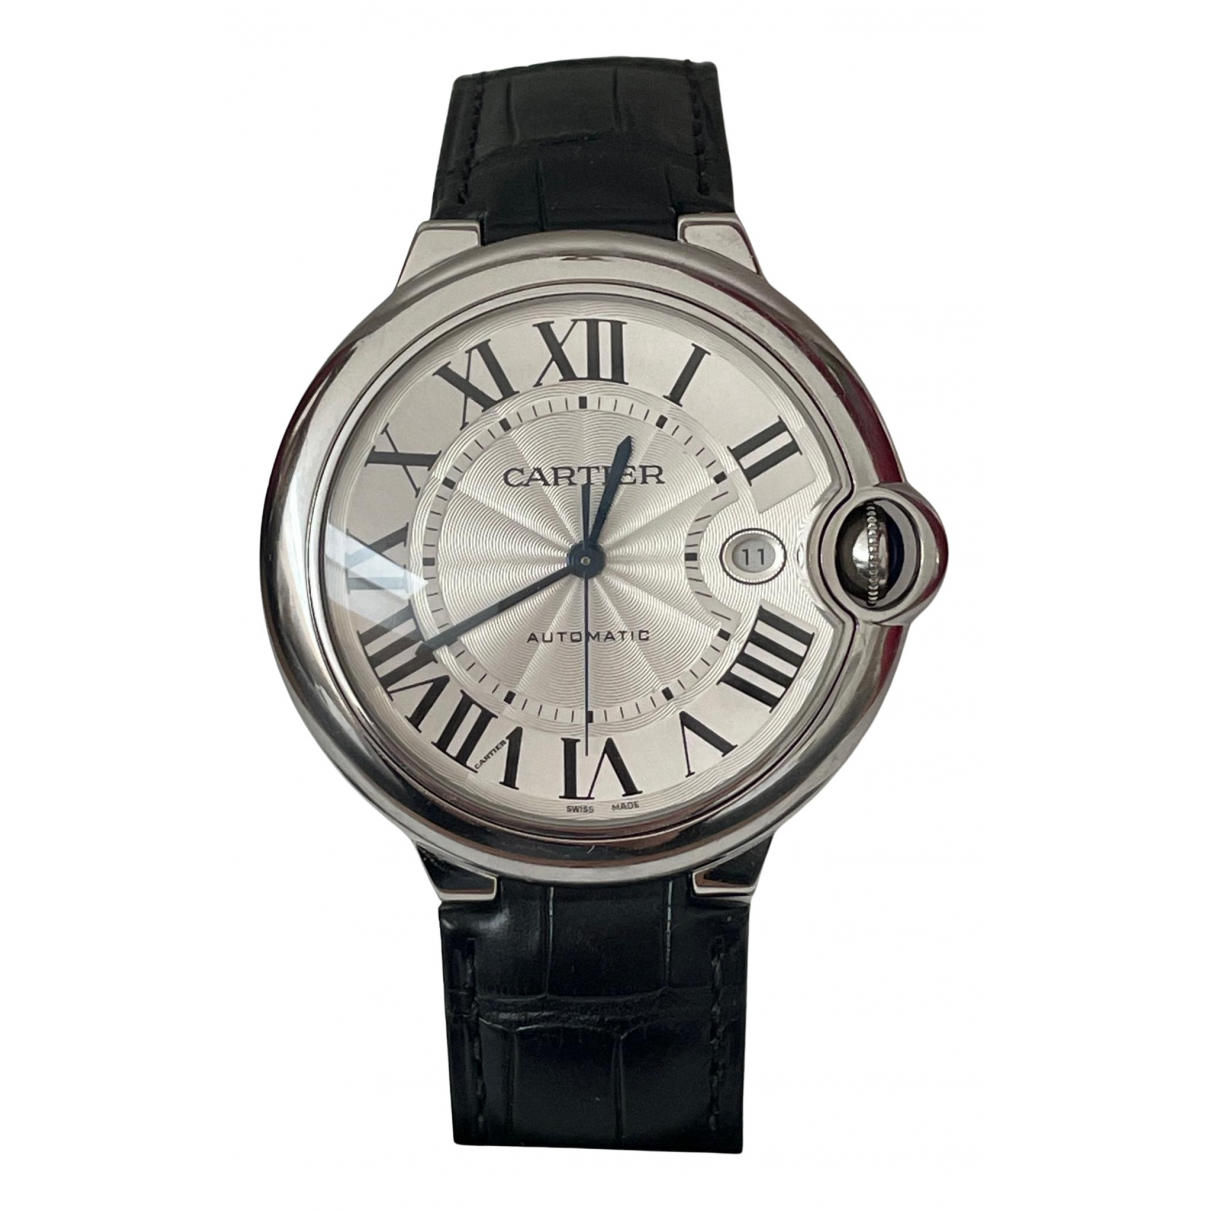 Cartier Ballon bleu Black Steel Watch for Women